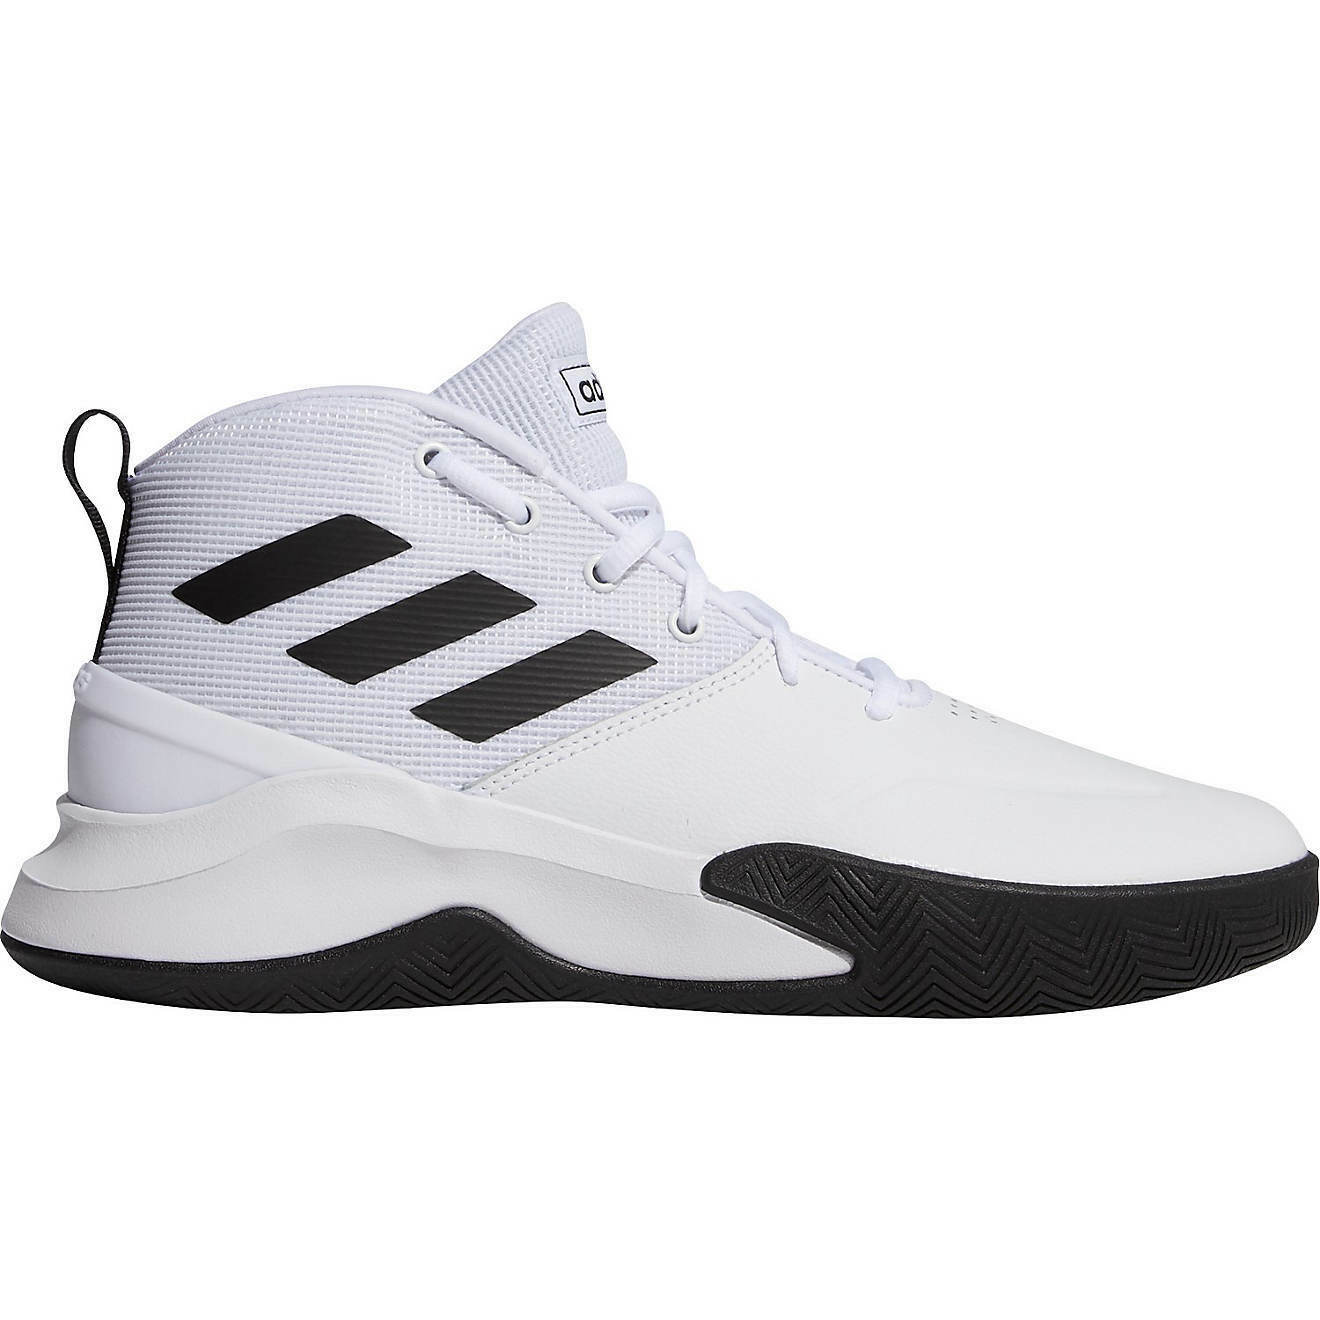 Mens Adidas Own The Game Basketball Shoes Size 13 White Black EE9631 OWNTHEGAME